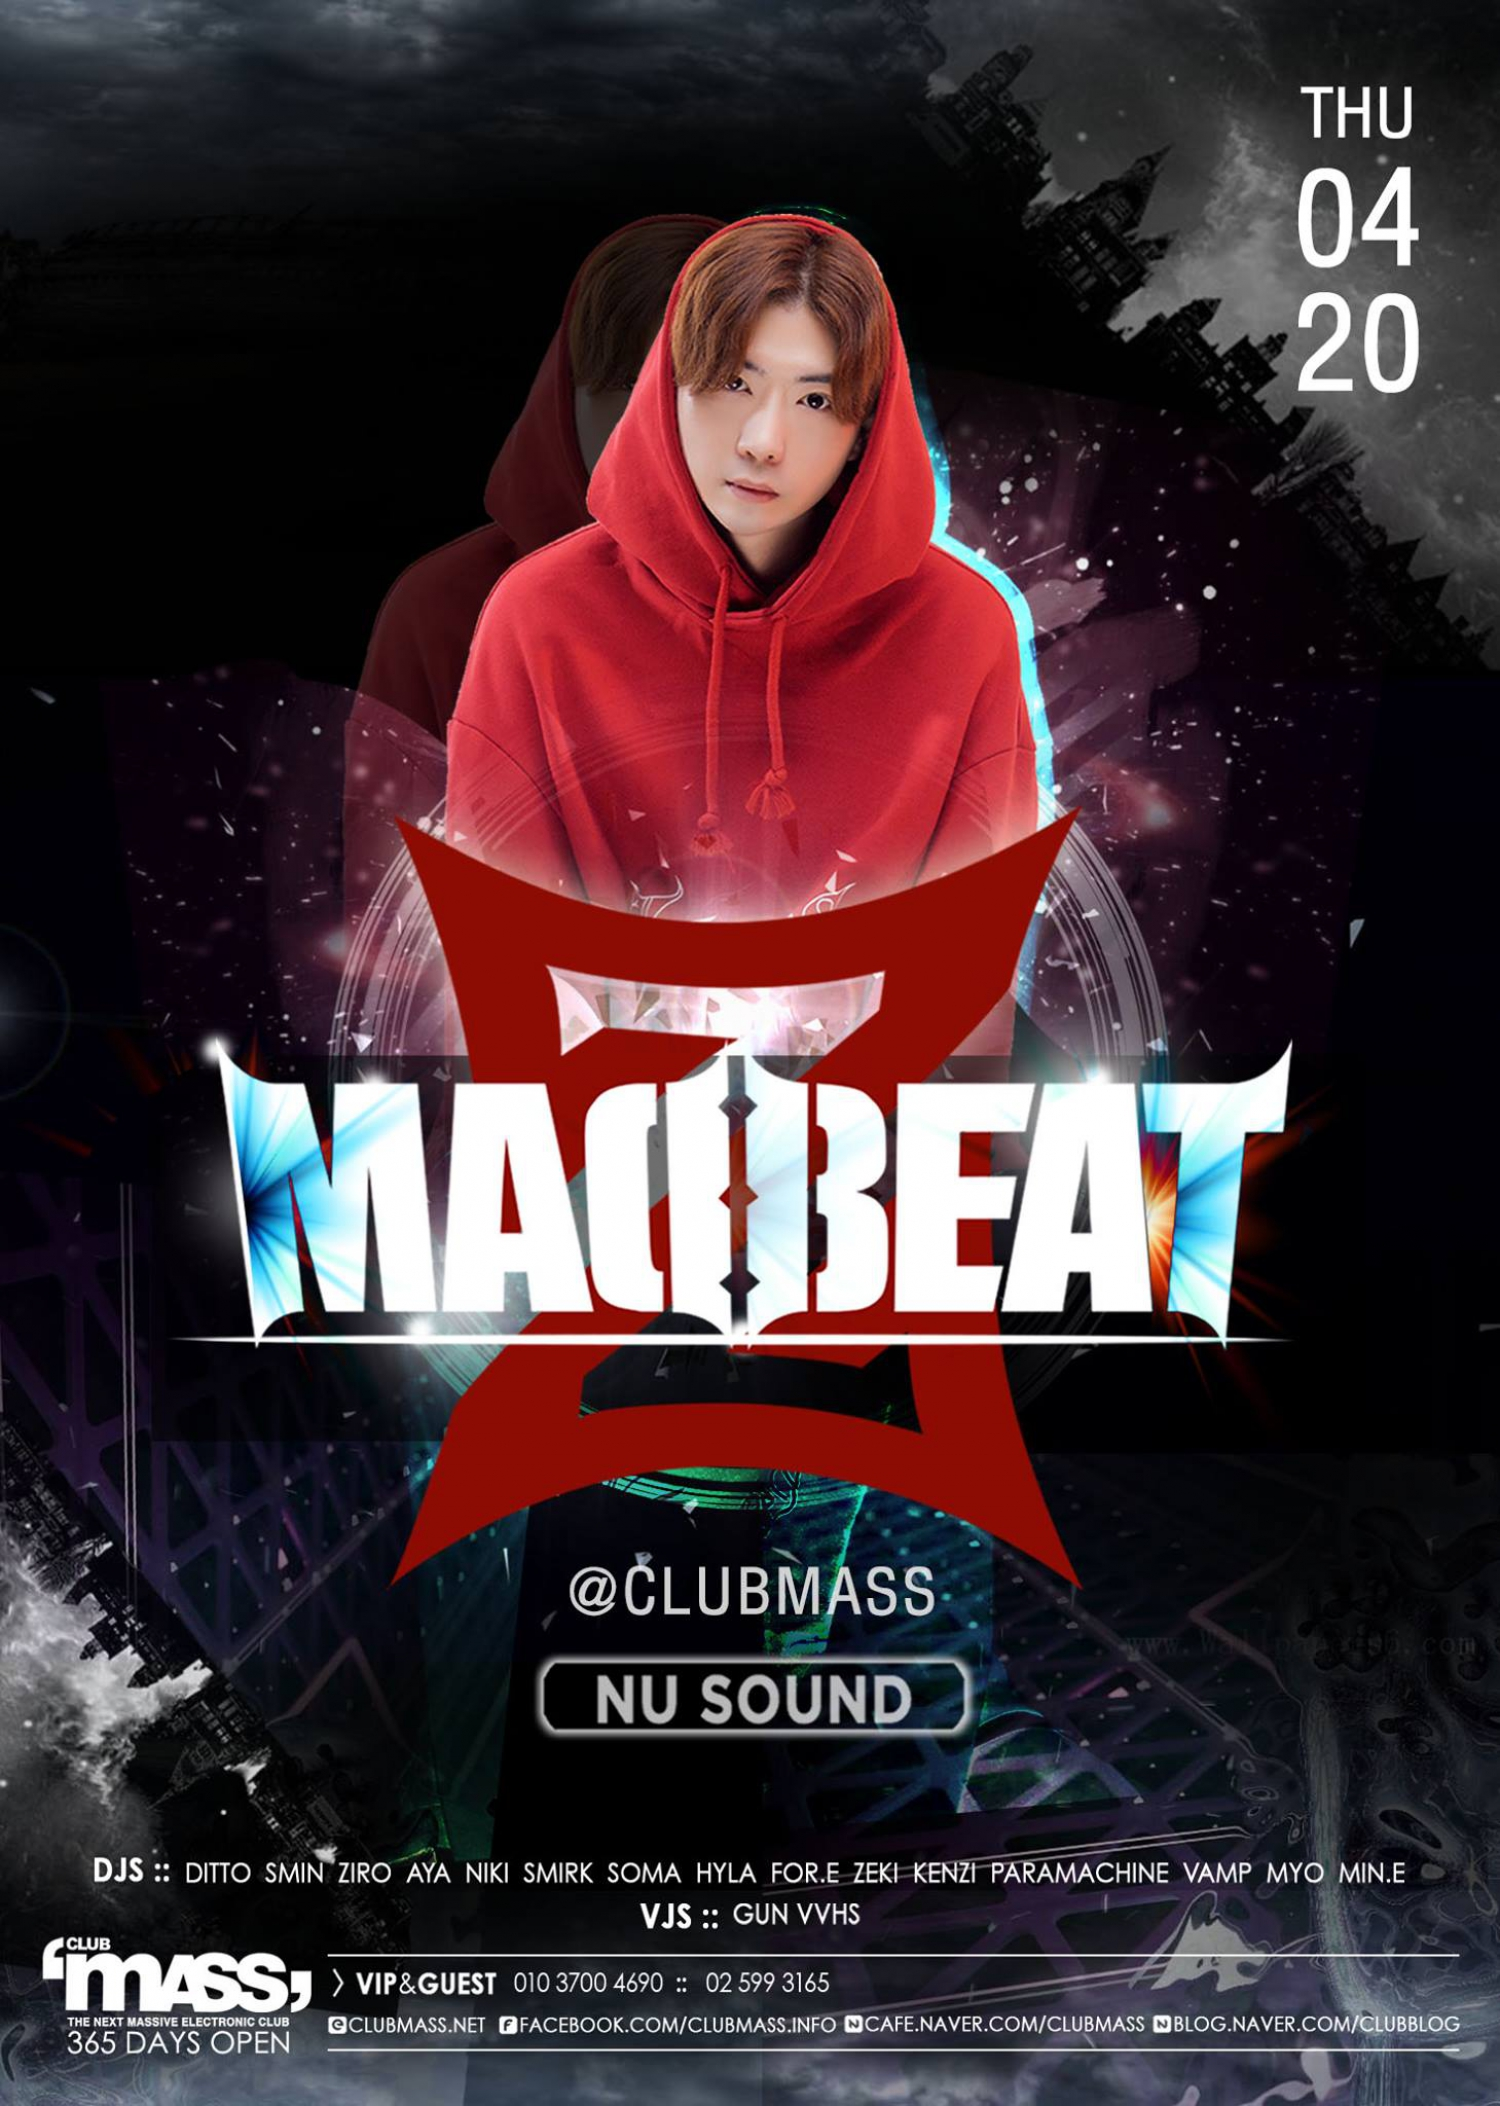 NUSOUND PARTY GUEST DJ_ MAD BEAT